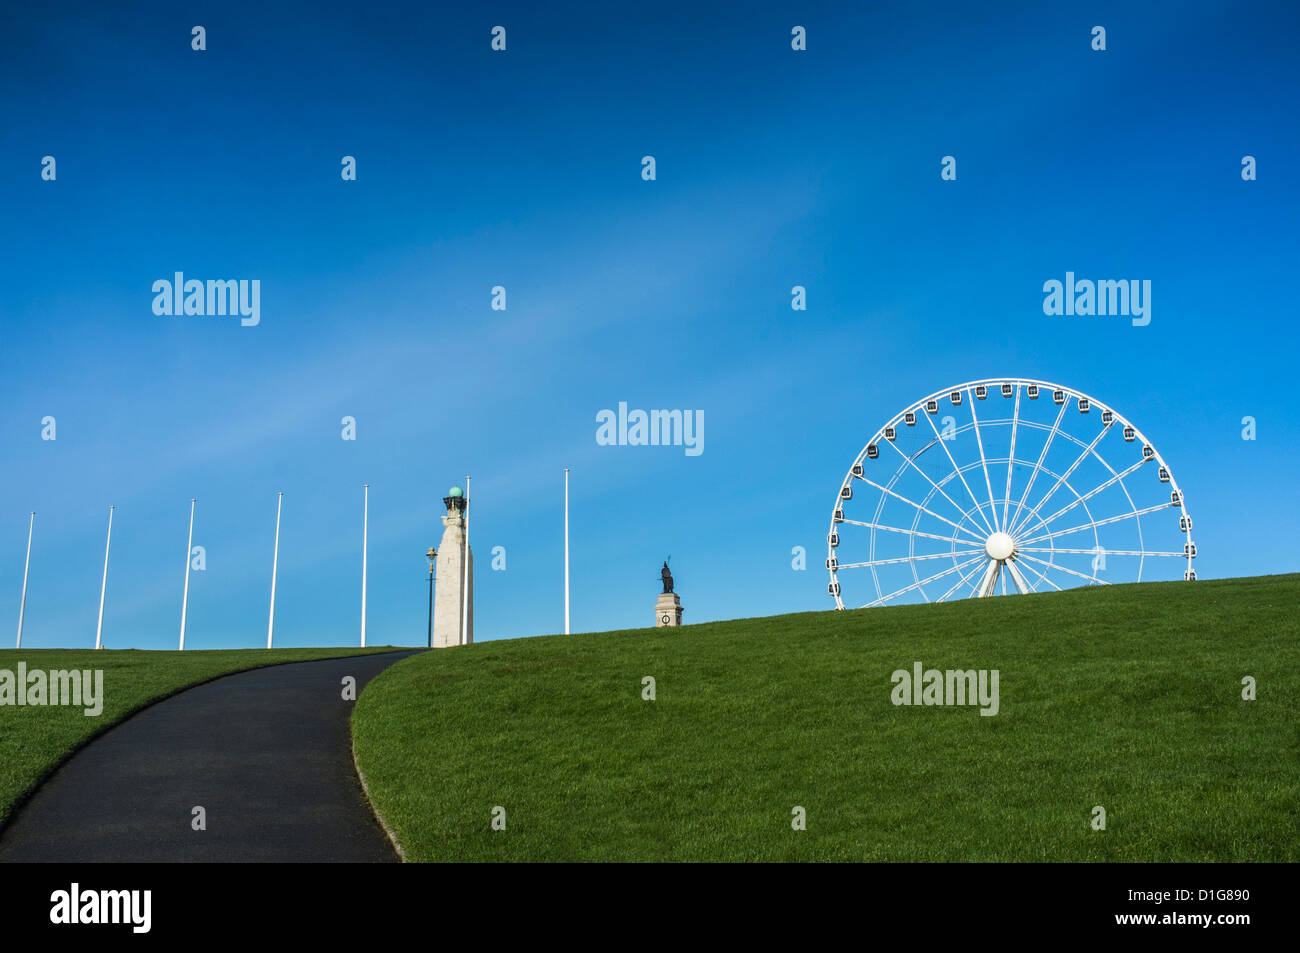 Plymouth Hoe with flagpoles, war memorials and ferris wheel - Stock Image